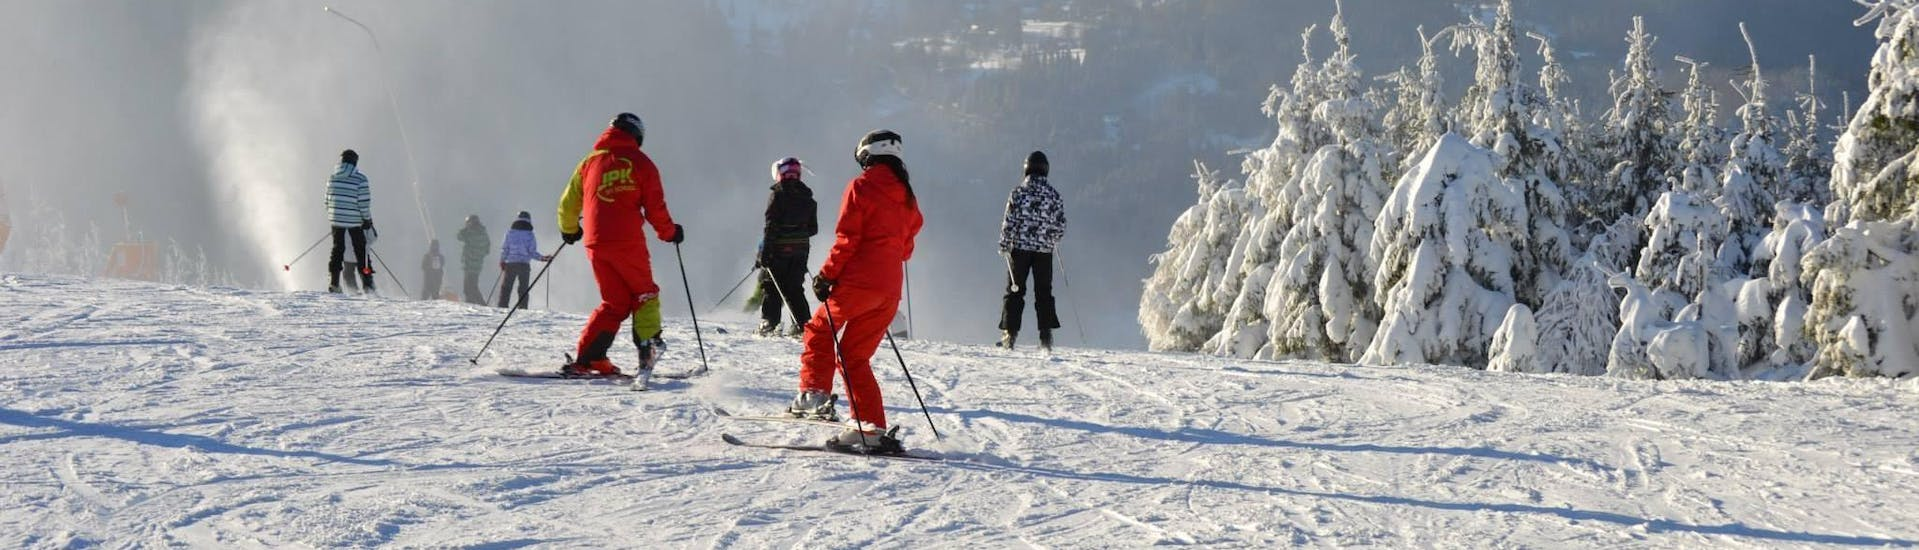 ski-lessons-for-adults---small-group---all-levels-1-hero